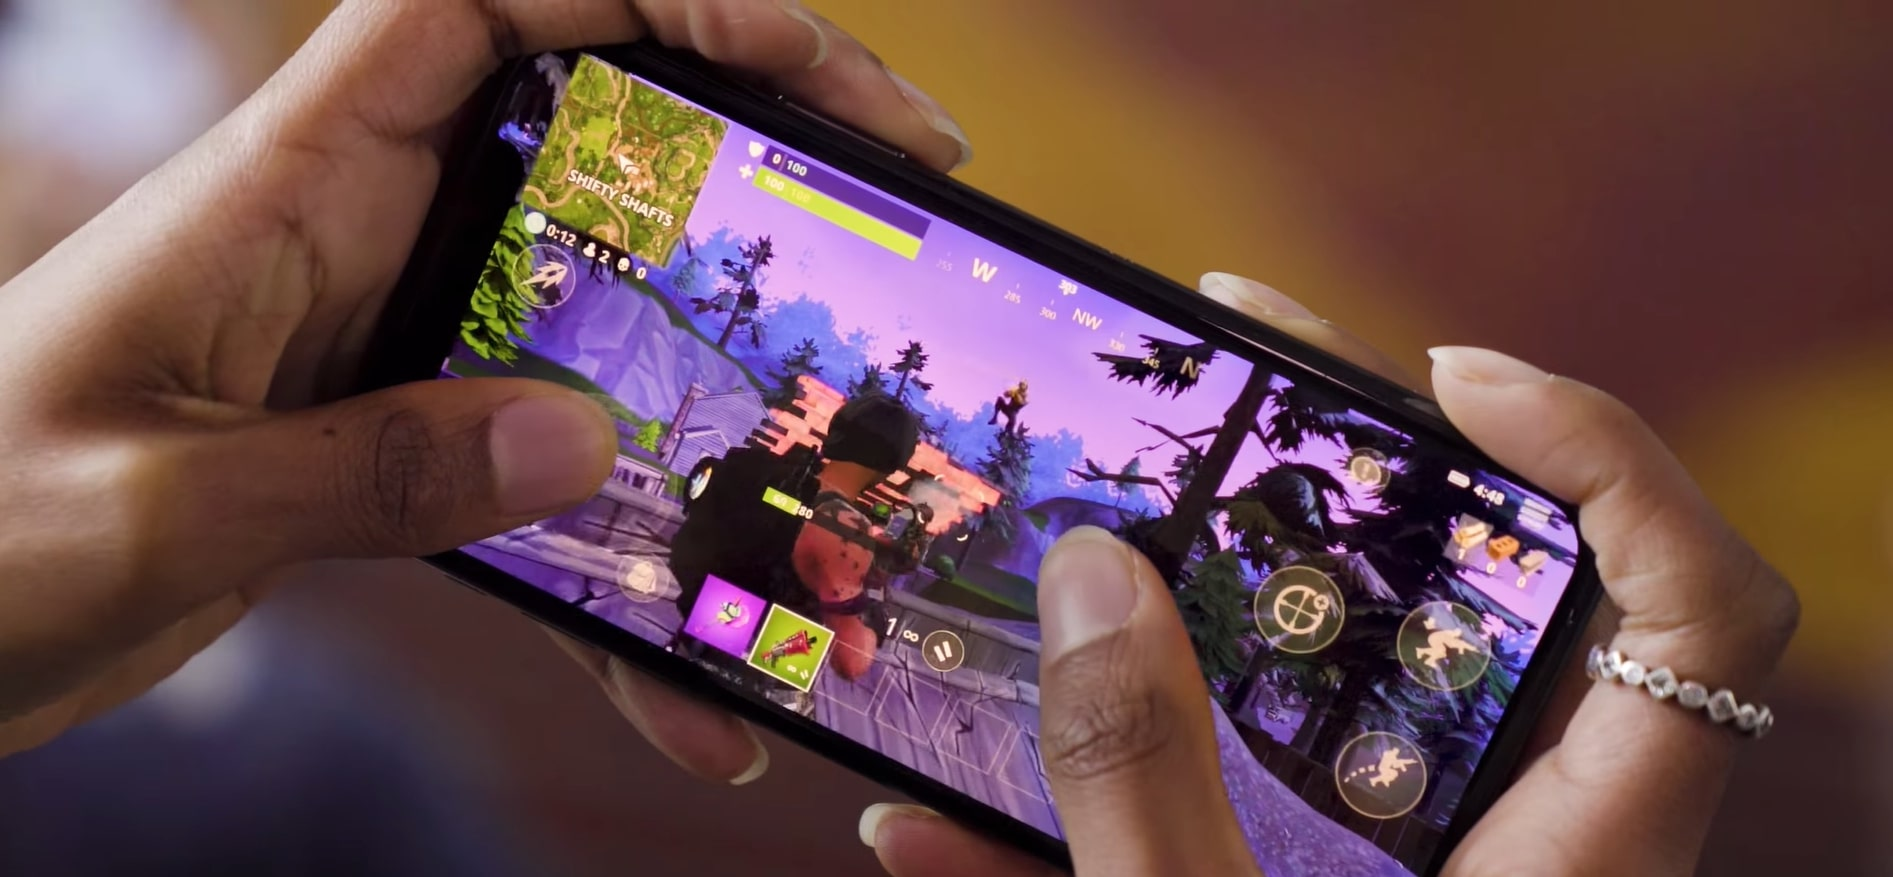 Epic Games sues Google after Fortnite is booted from the Play Store